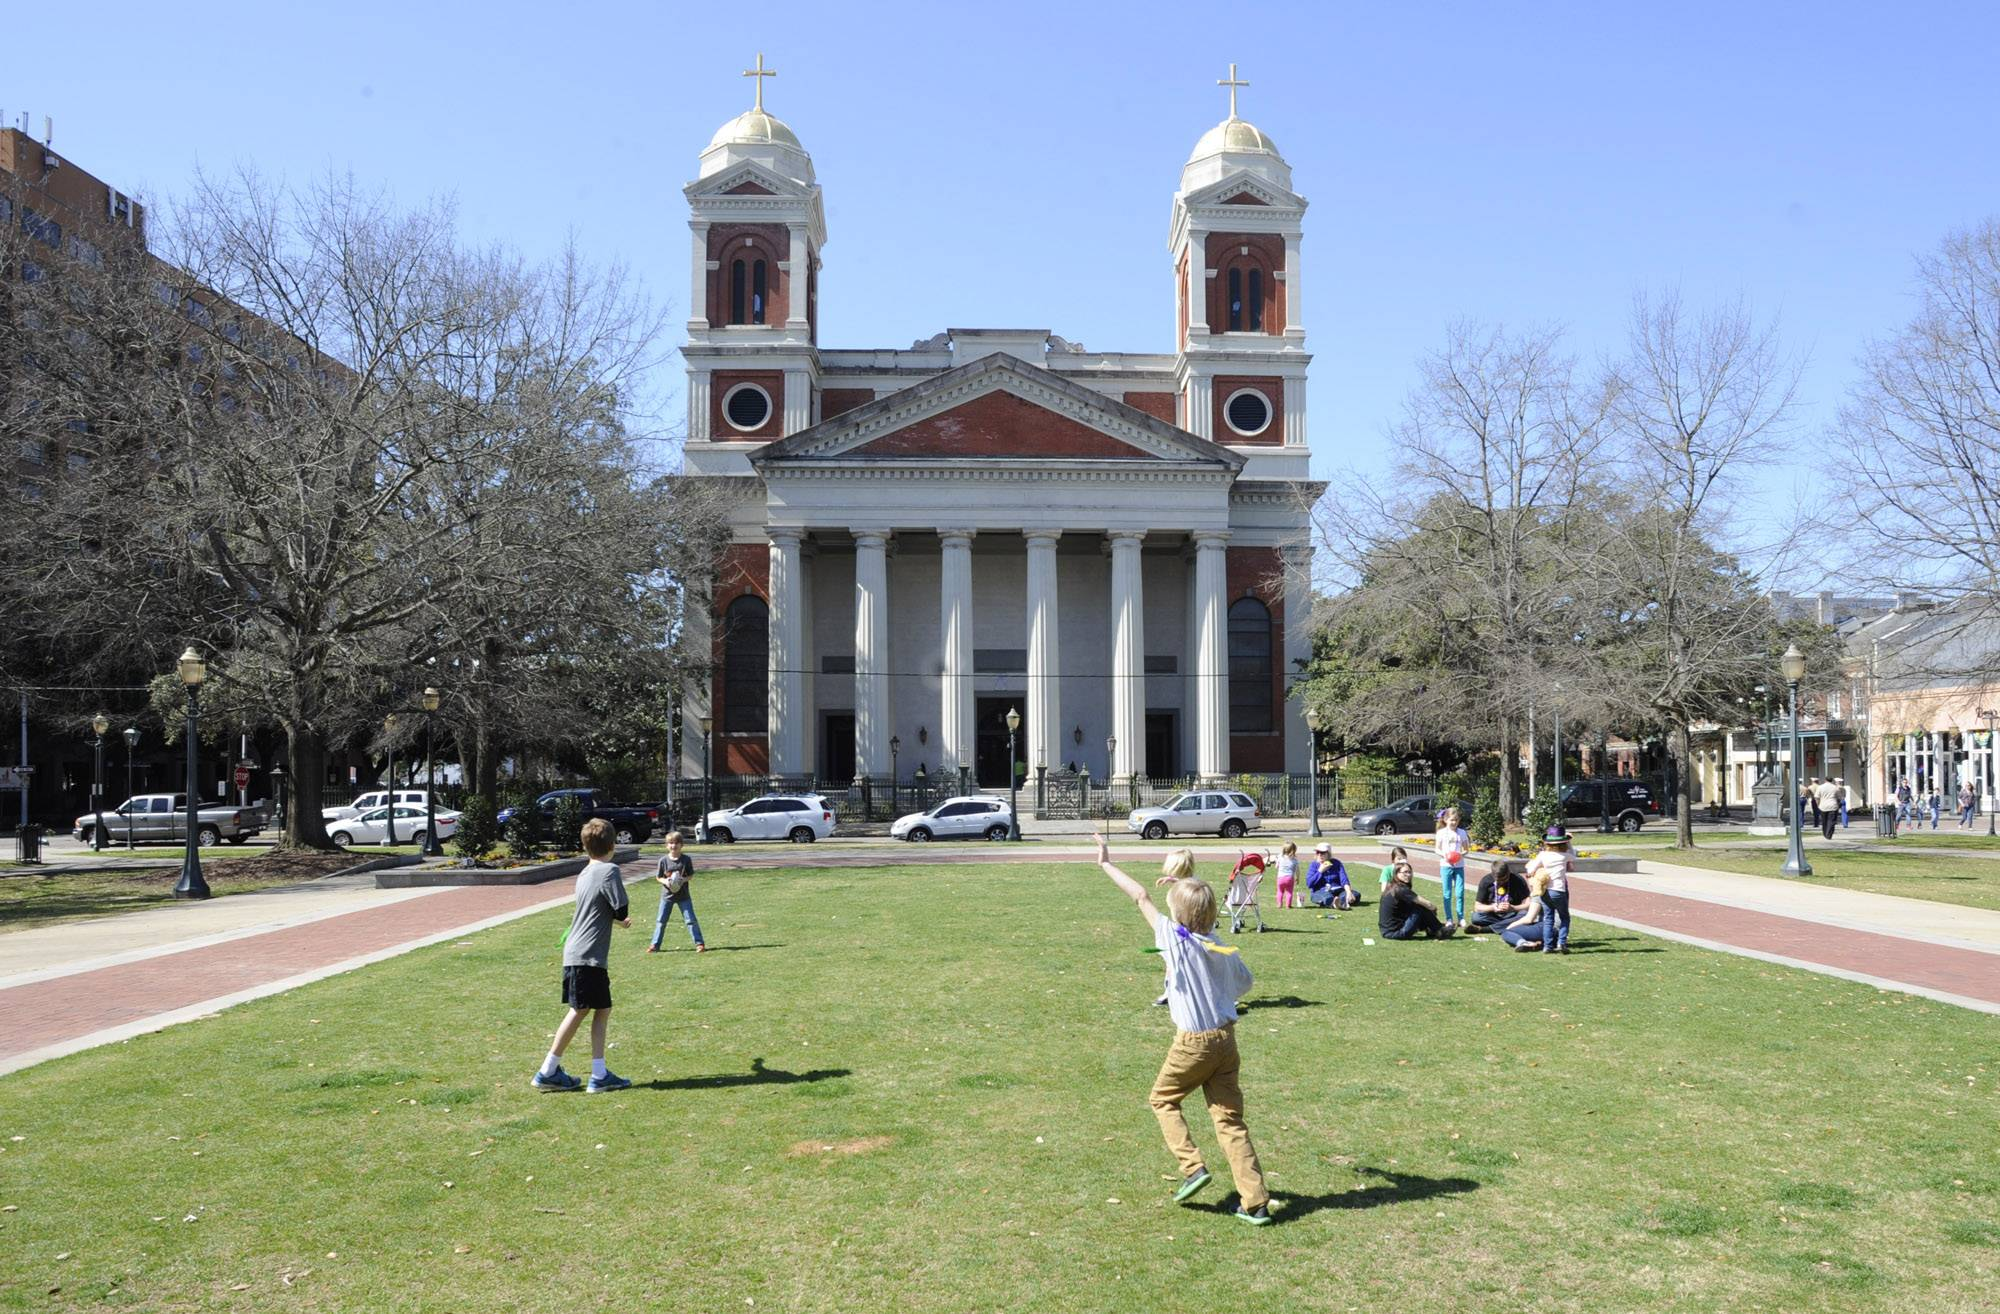 Children play in a park near the Cathedral Basilica of the Immaculate Conception in Mobile, Ala. The church is among the free attractions in Mobile.